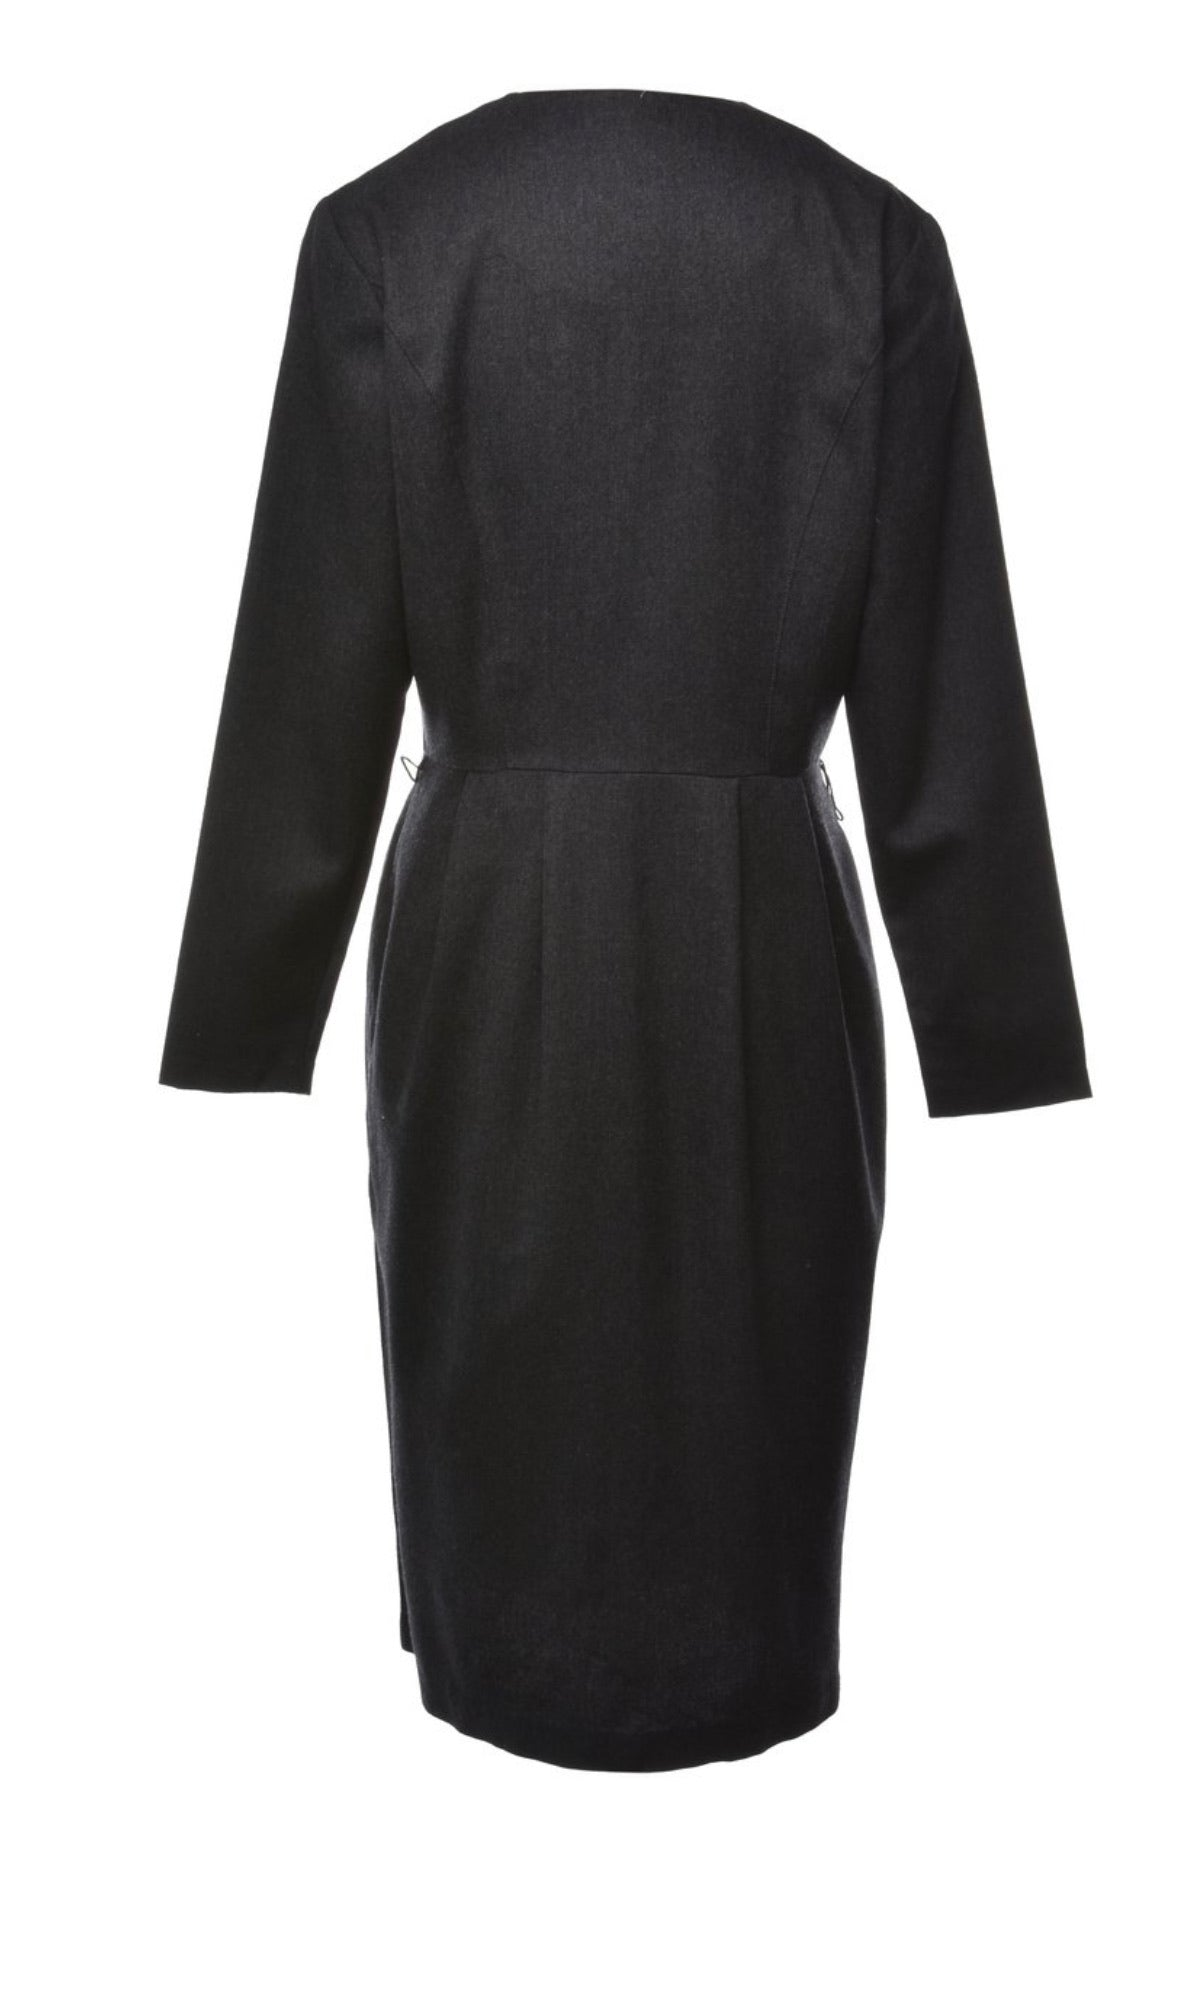 The St Michael Wool Dress